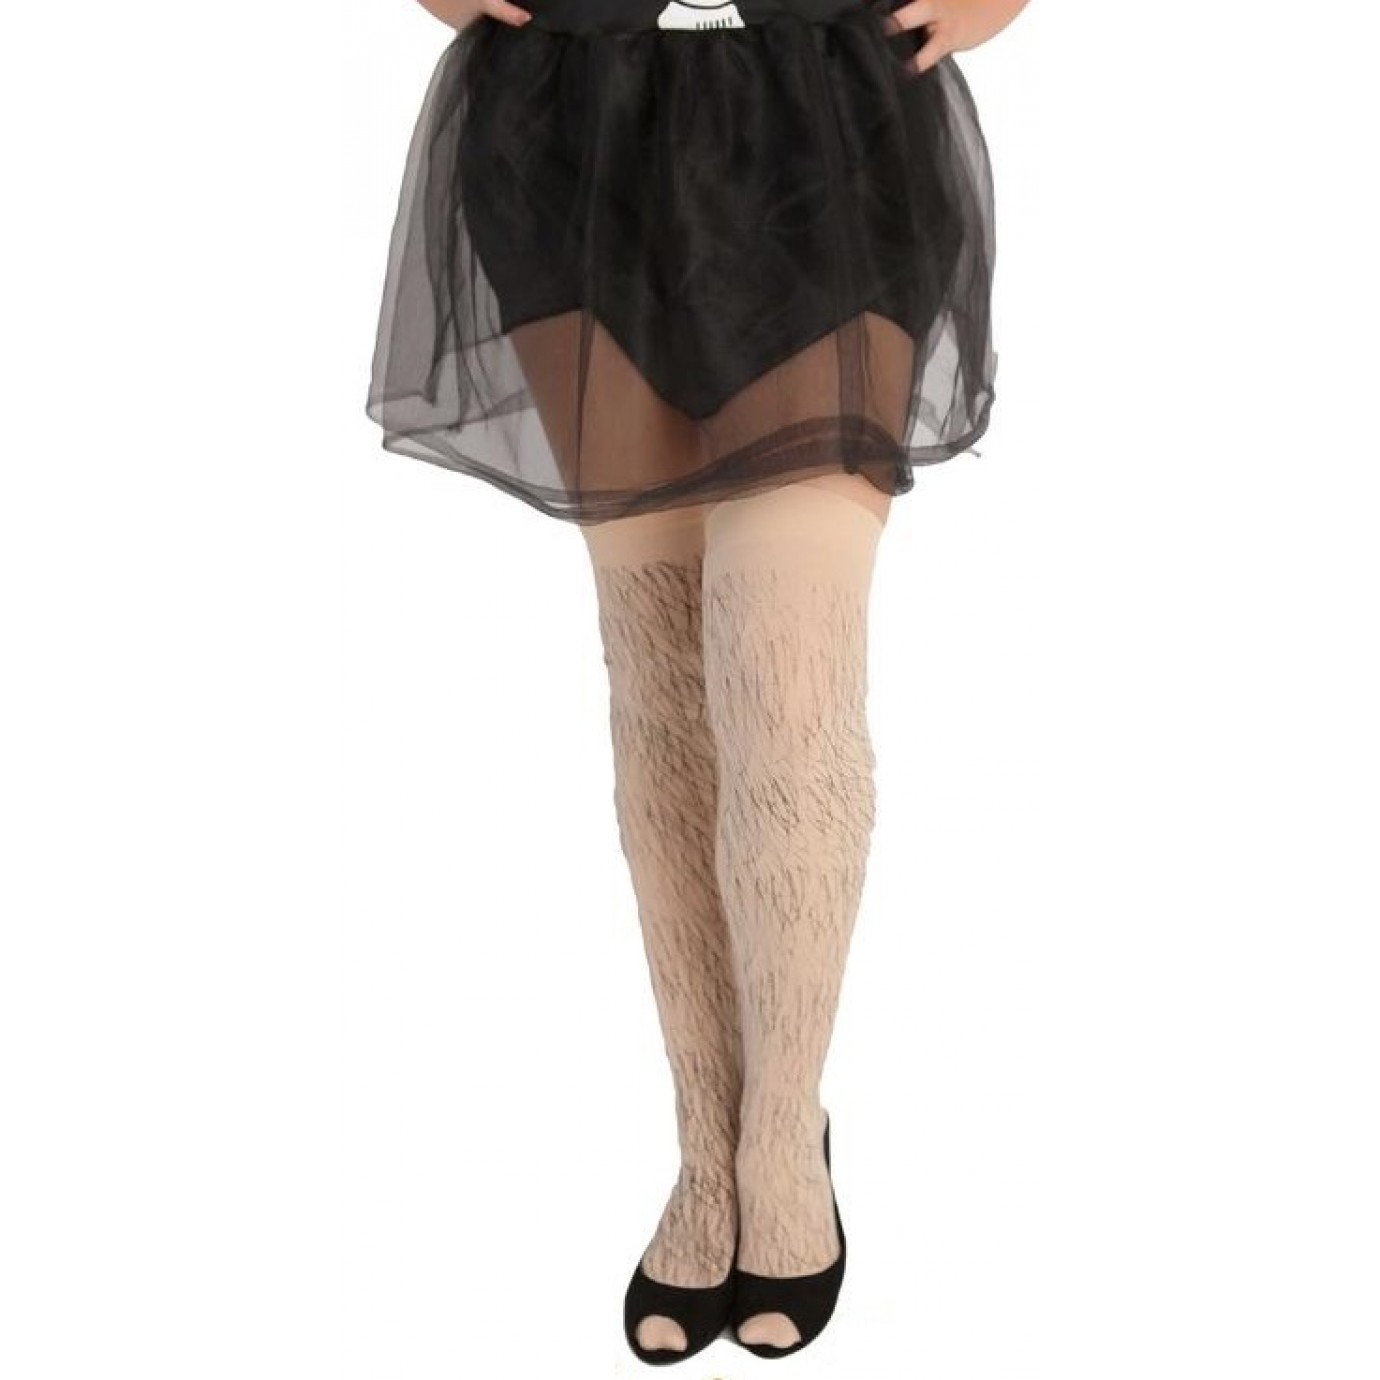 ca3cd732b9c79 Stockings - Full Length, Hairy Legs | Stockings & Hoisery | Clothing |  Costume Accessories | Costumes | The Party People Shop